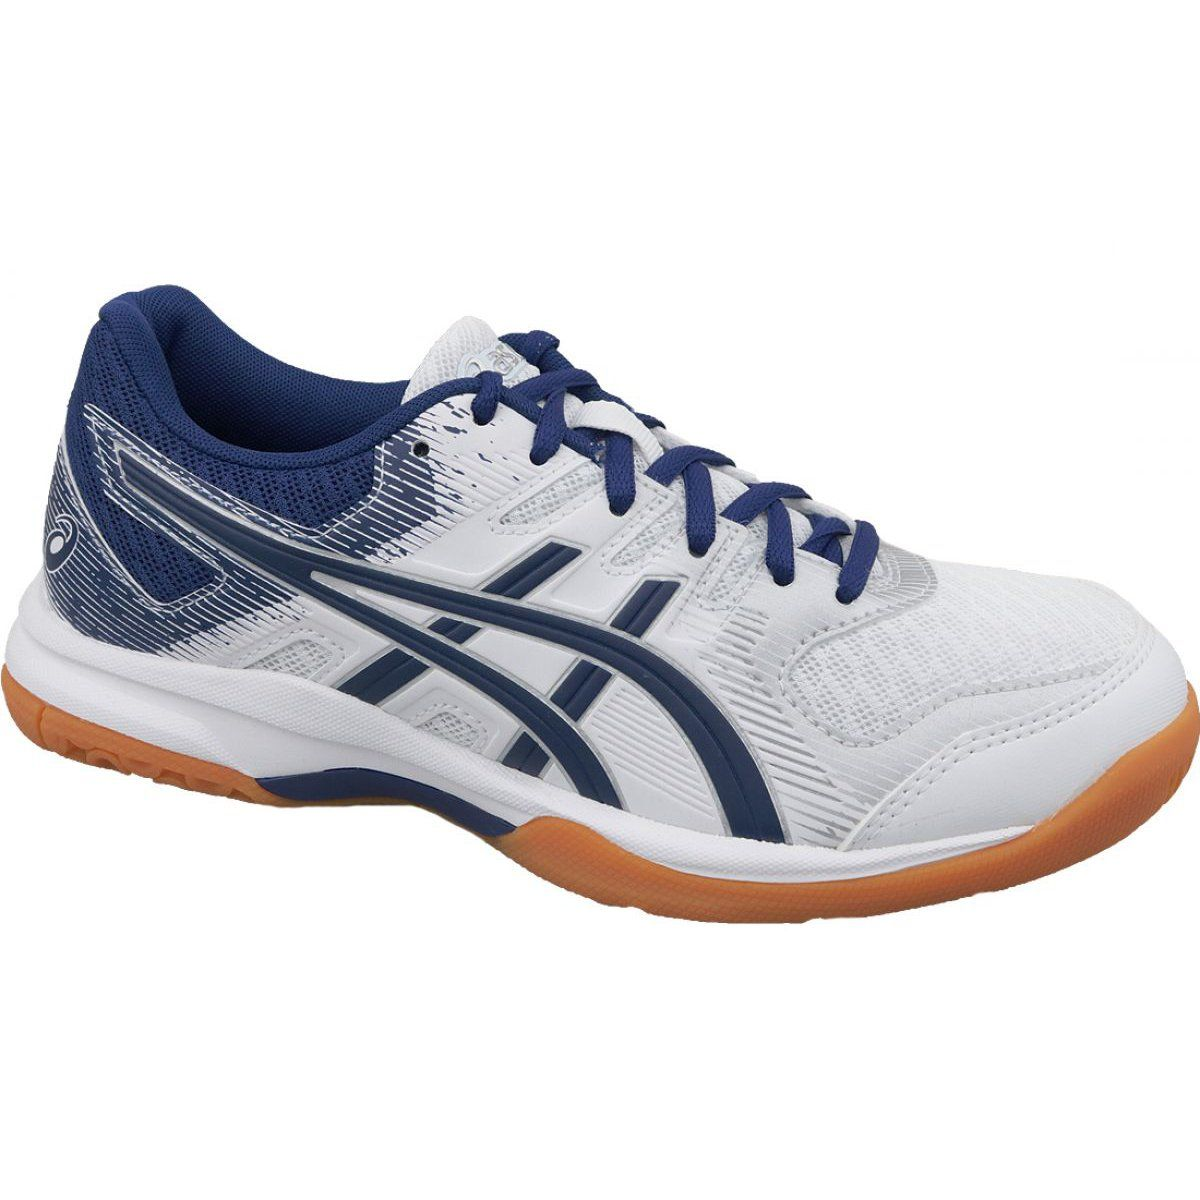 Asics Gel Rocket 9 Volleyball Shoes 1072a034 102 White White Volleyball Shoes Asics Shoes